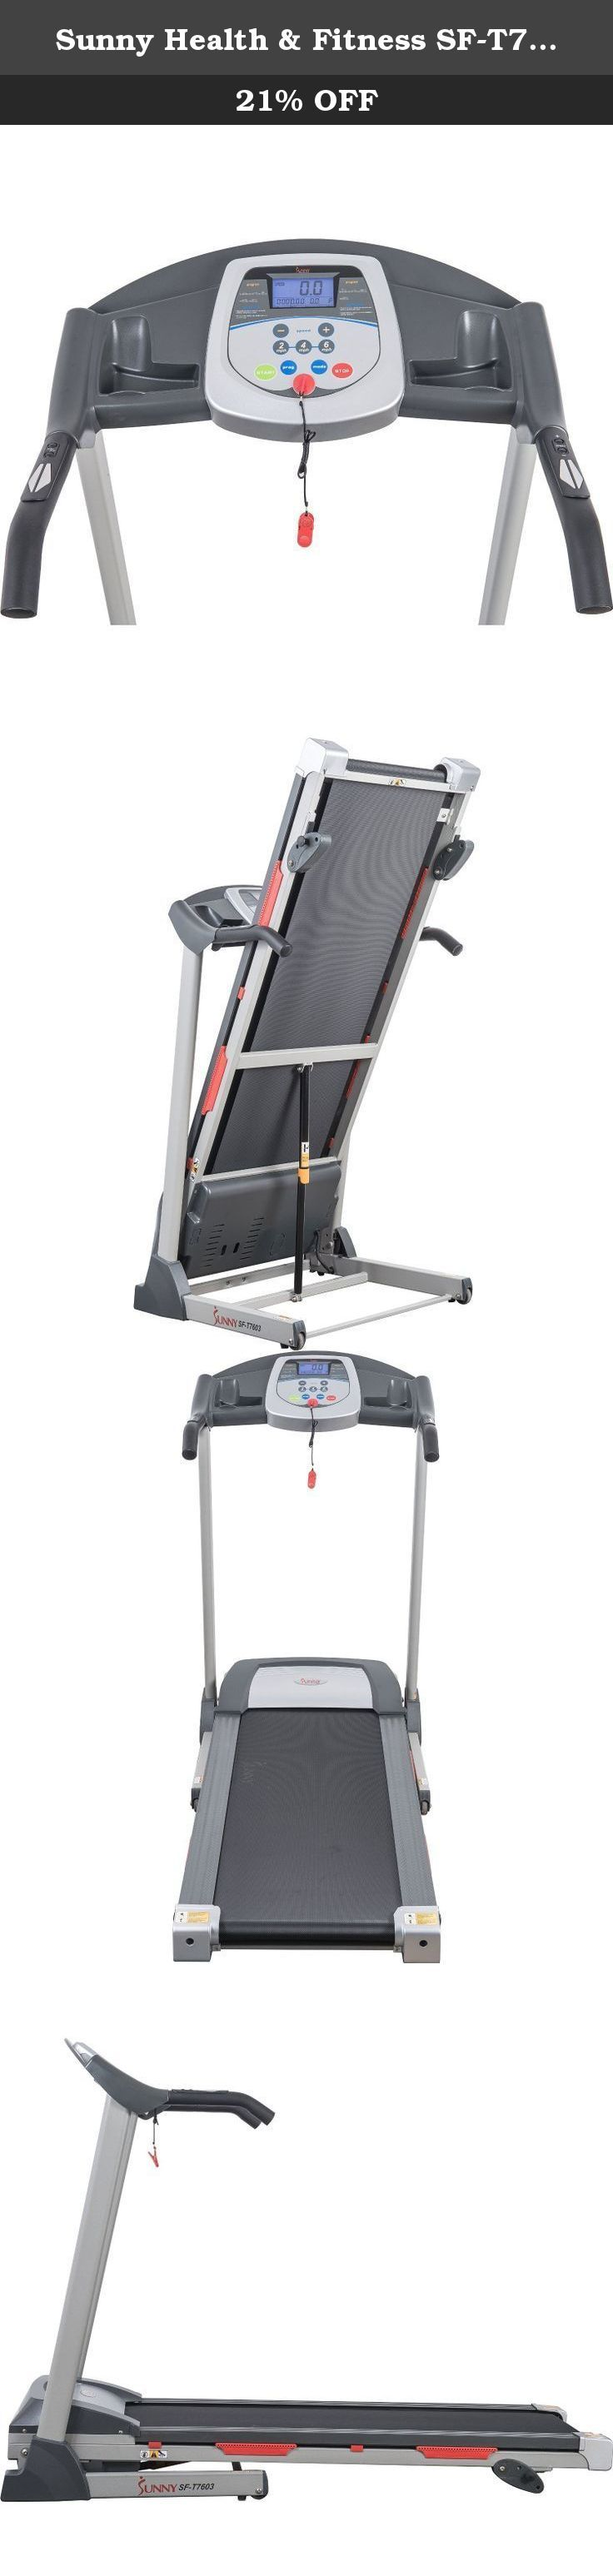 Sunny Health & Fitness SF-T7603 Motorized Treadmill, Grey. Sunny Health & Fitness presents our brand new motorized Treadmill. If you have no time to go the gym, or go running outdoors, this is the solution. With this Sunny Health & Fitness Treadmill, your home is your gym that will help you stay in shape. It features a folding mechanism and a soft drop system to help you fold and unfold your Treadmill safely and with ease. The handrail controls allows you to control start, stop, adjust...